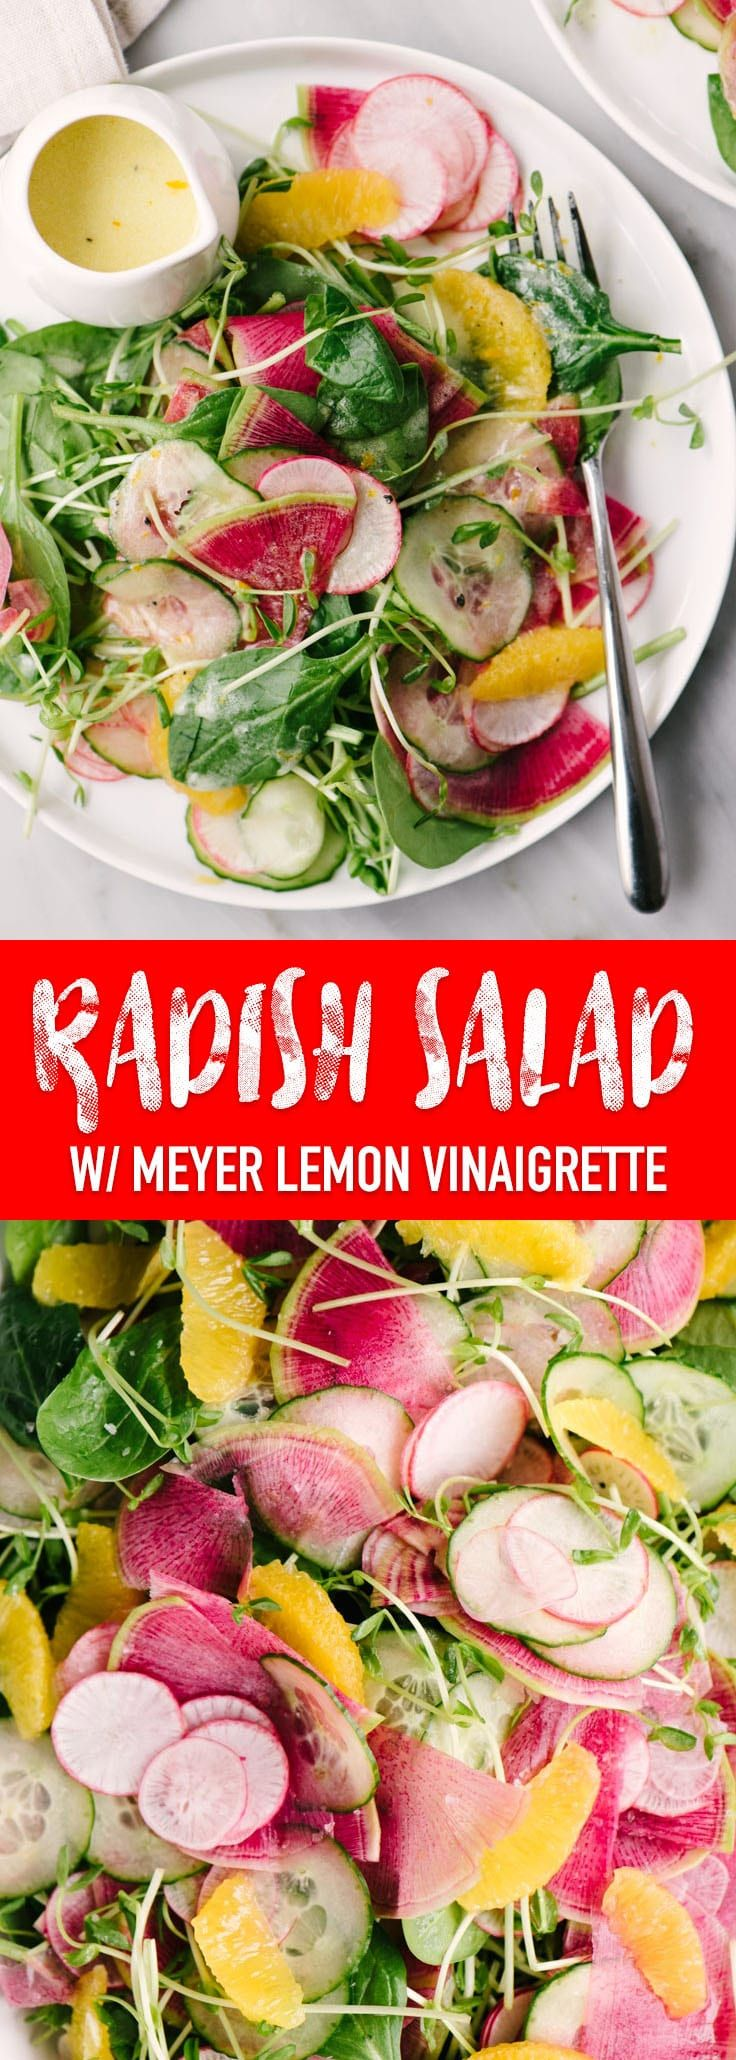 This watermelon radish salad with meyer lemon vinaigrette is the very best of winter produce. This winter salad recipe is vibrant, earthy, tangy and almost too pretty to eat. #vegetarian #winter #radish #watermelonradish #wintersalad  #recipe